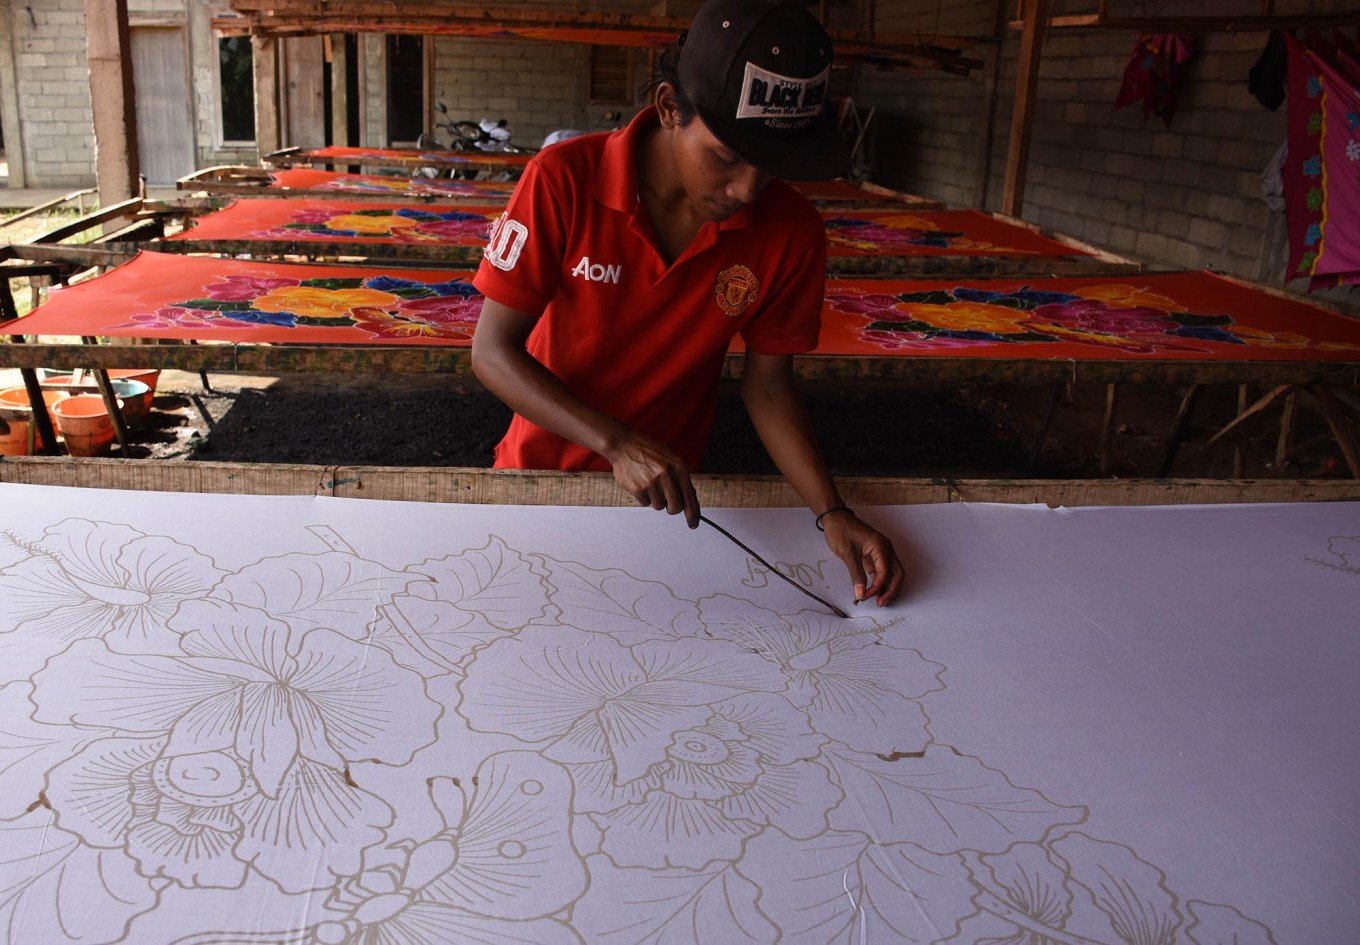 A craftman draws a floral pattern in malam (hot wax) to create a sarong using the wax-resist dyeing technique. JP/Aman Rochman